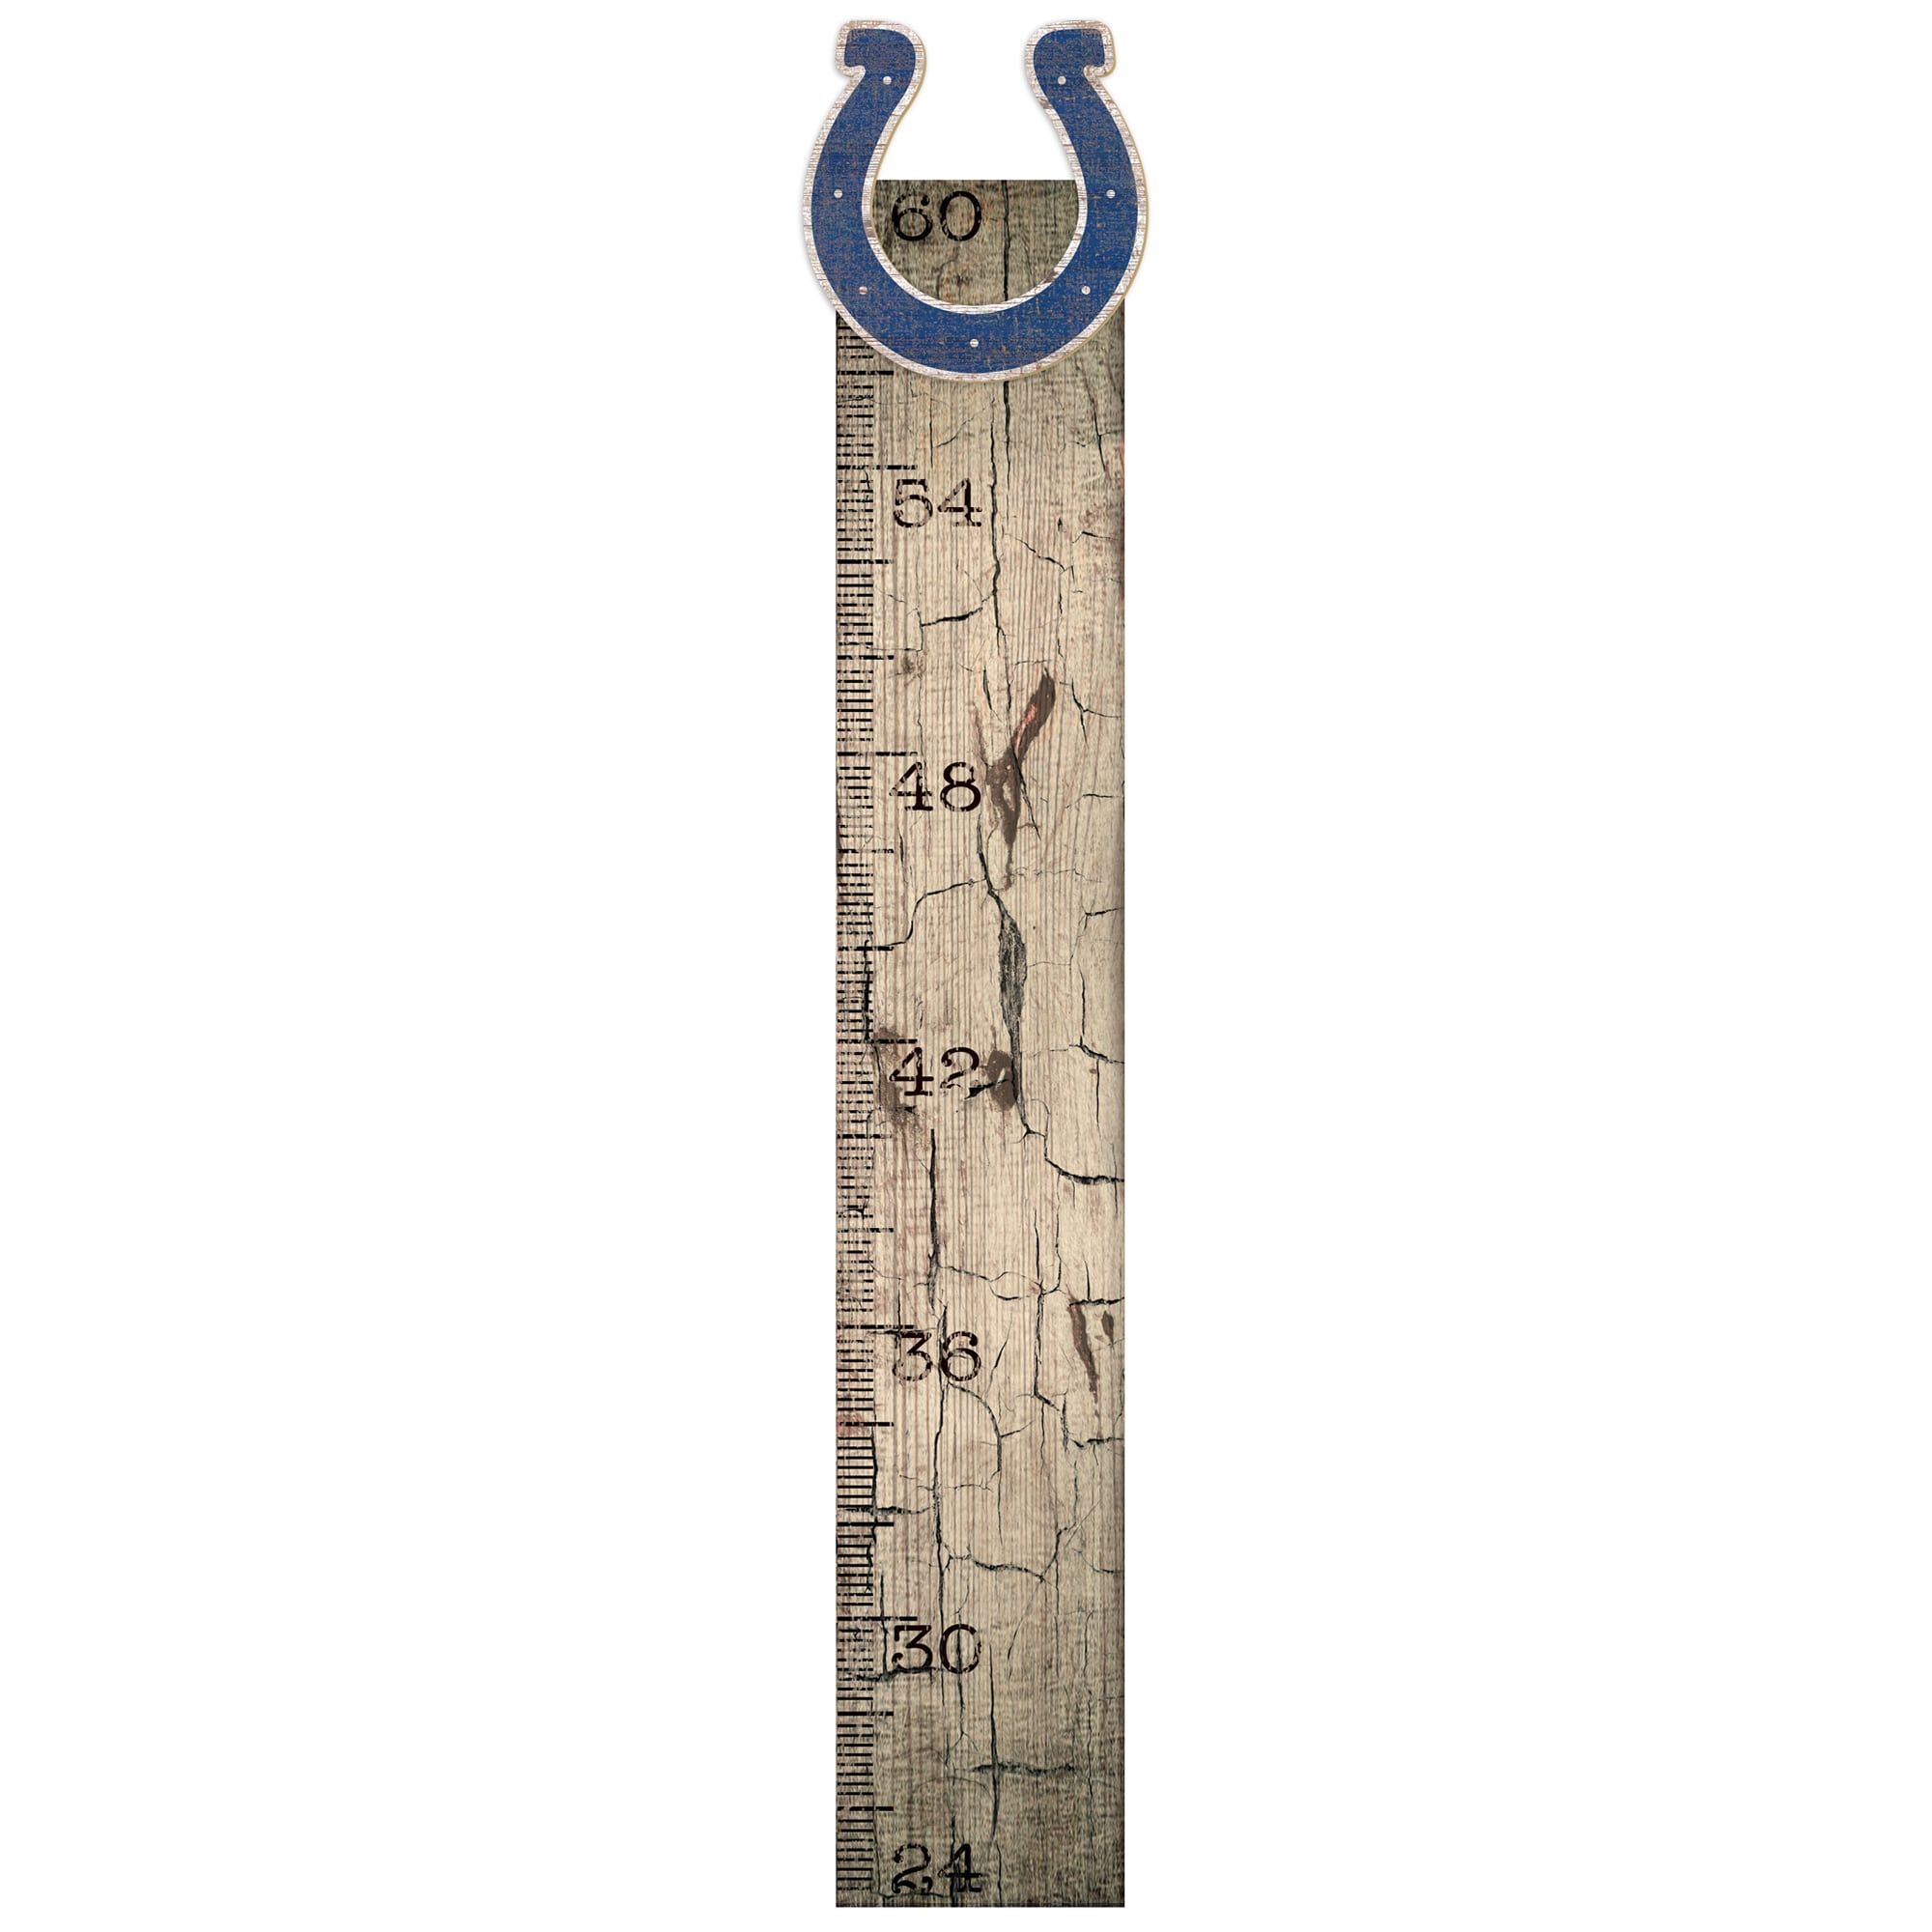 "Indianapolis Colts 6"" x 36"" Growth Chart Sign"